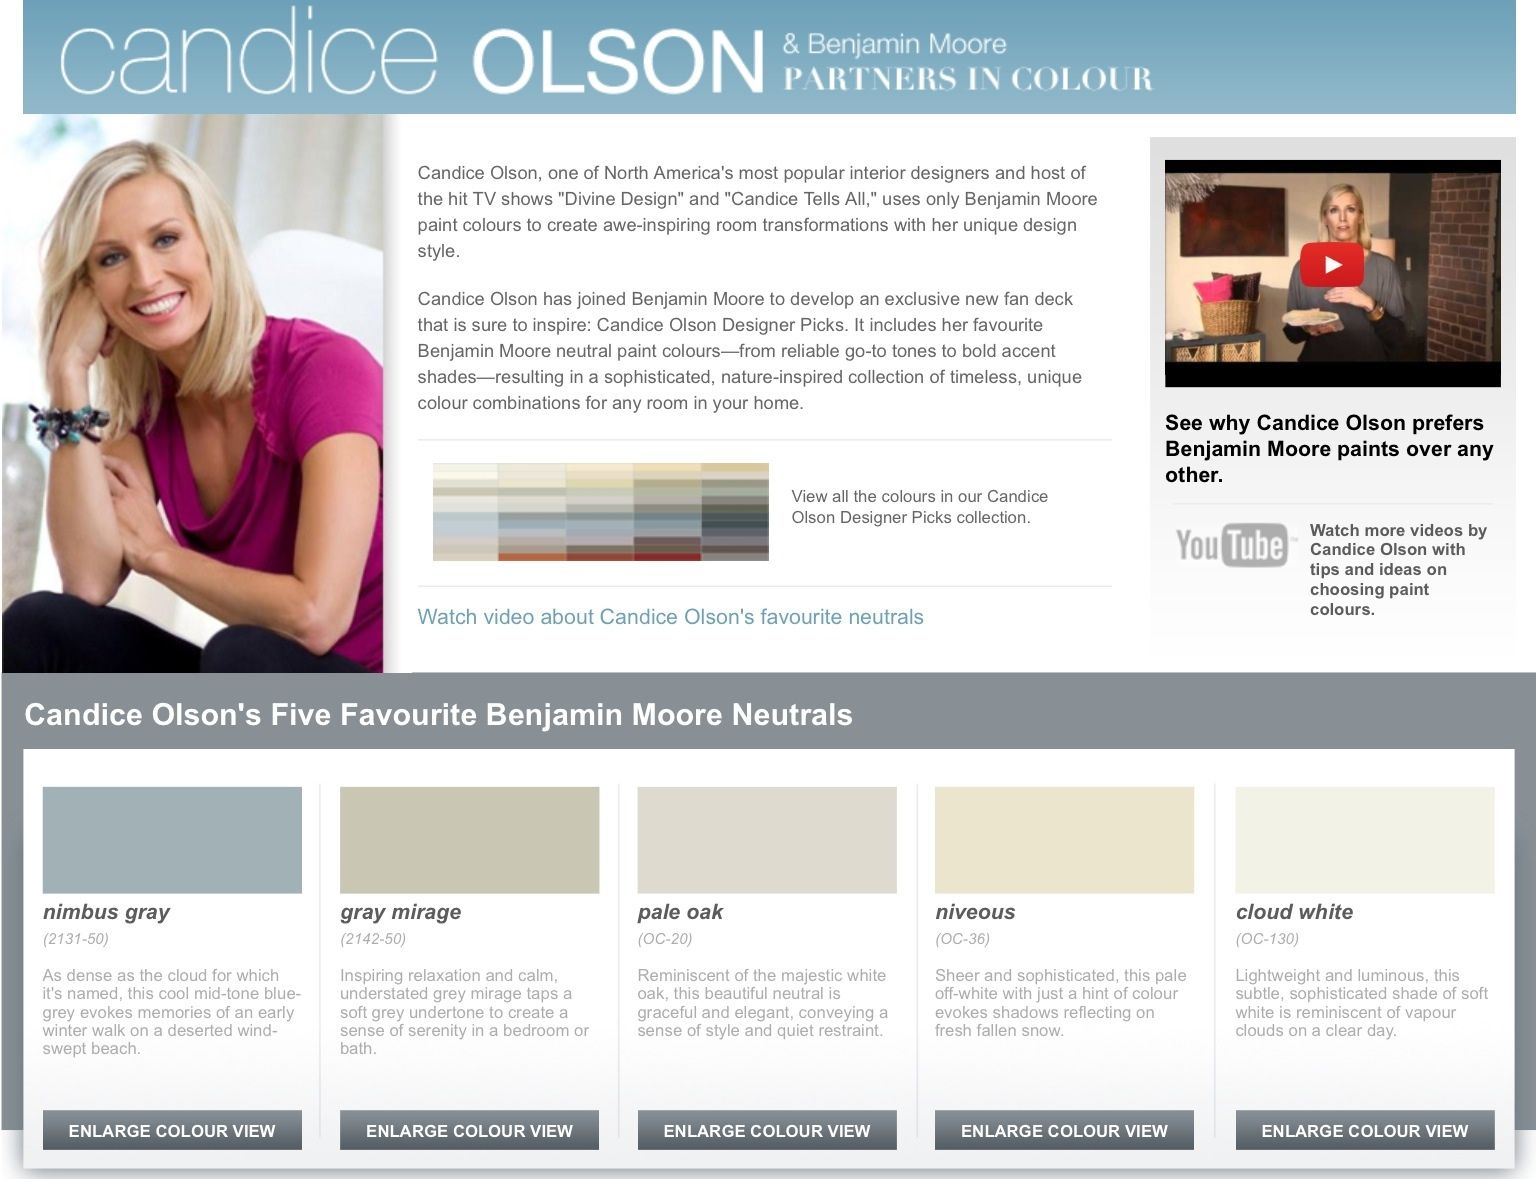 candice olson 39 s colors paint candice olson designer